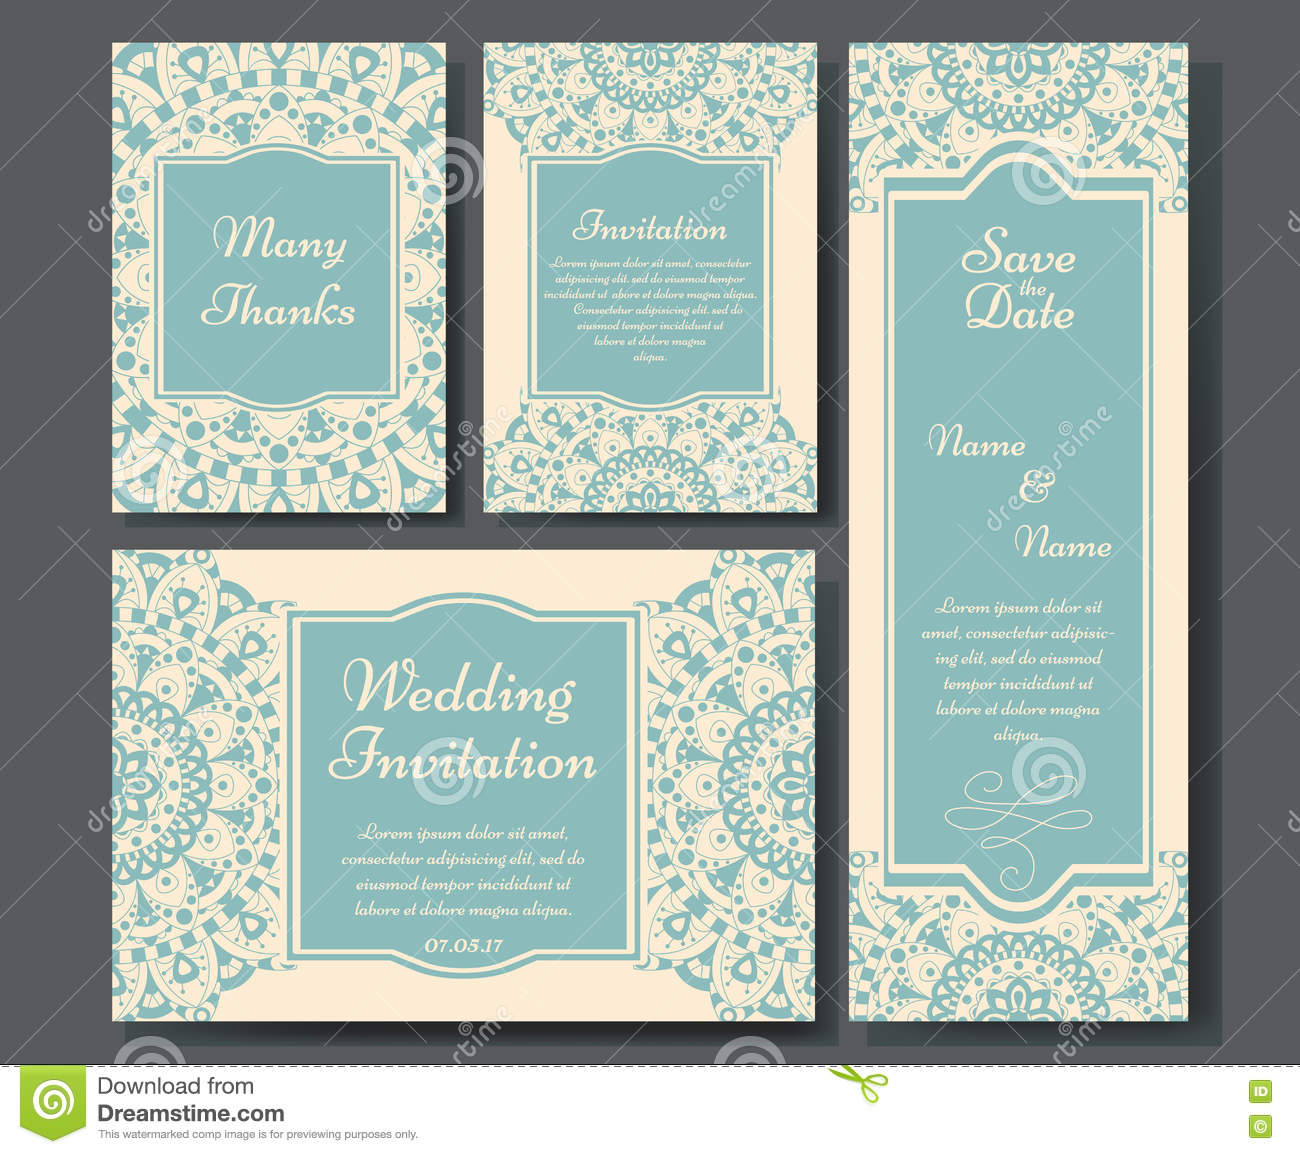 Wedding card collection with mandala template of invitation card wedding card collection with mandala template of invitation card decorative greeting invitaion design with vintage islam arabic stopboris Choice Image